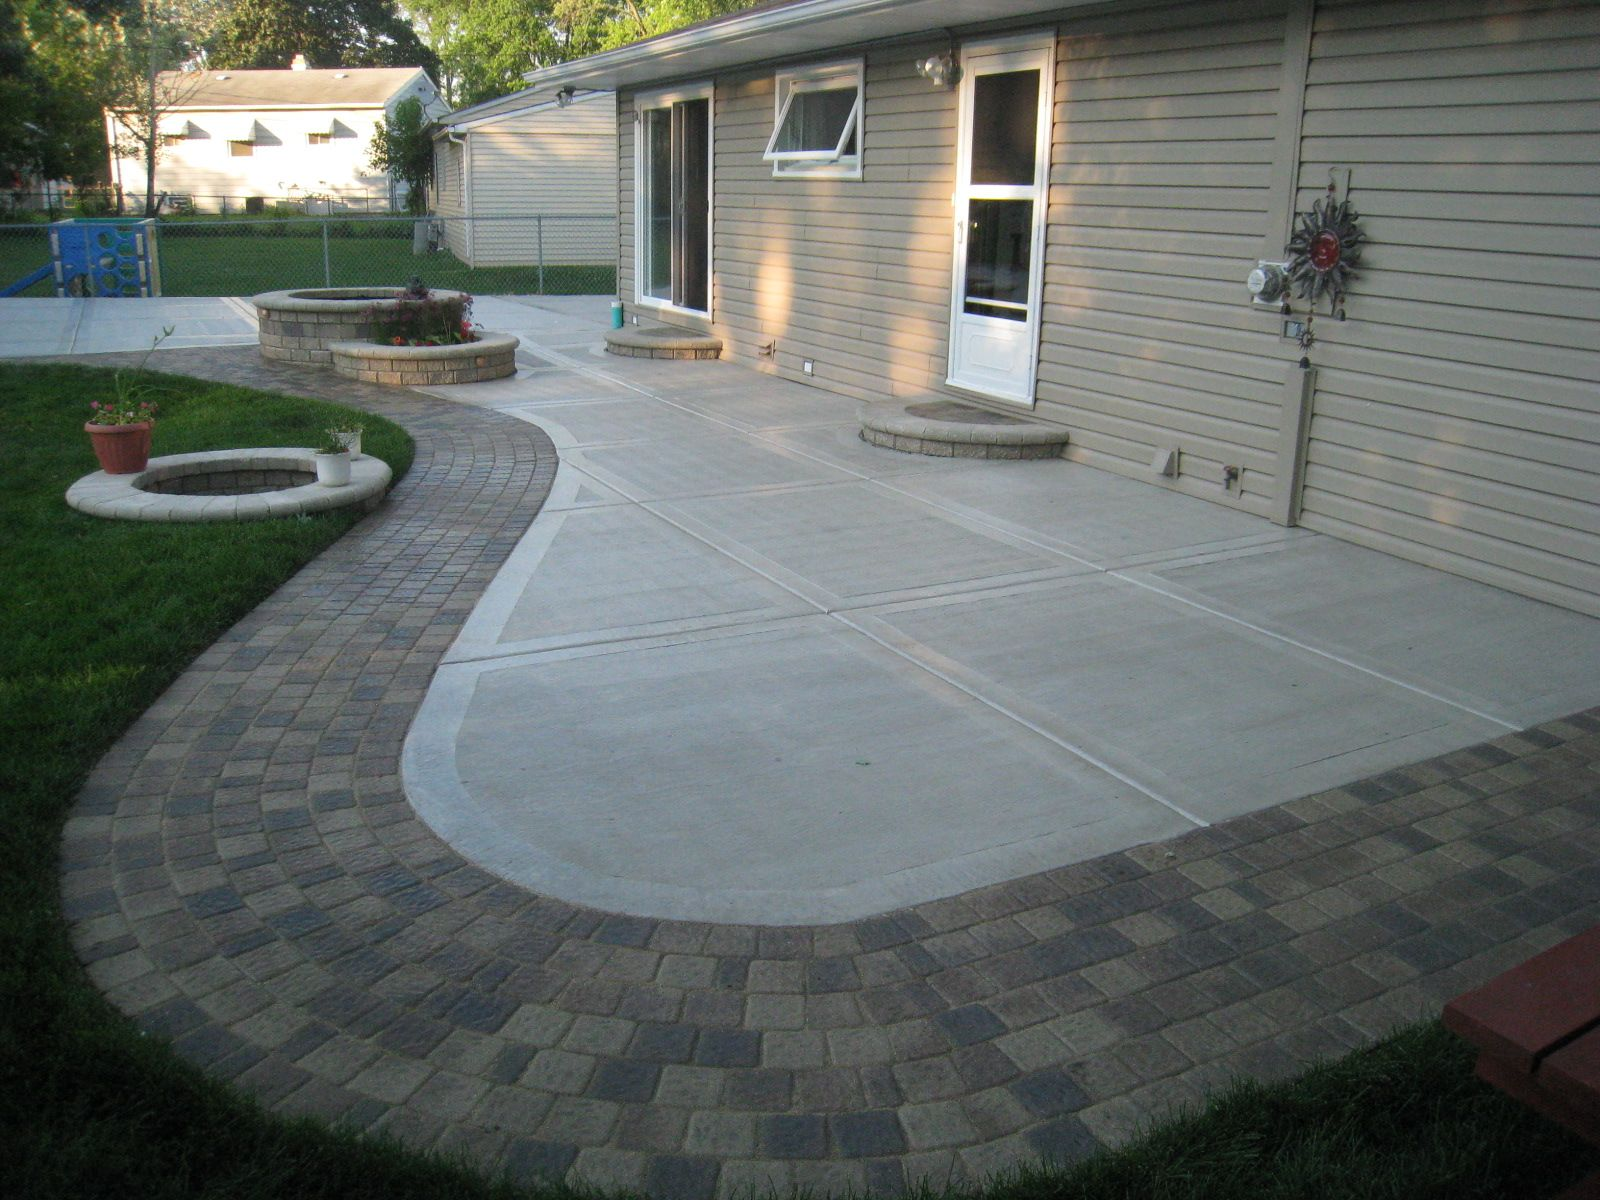 design back patio ideas stone designs concrete lovely backyard best of yard awesome patios hypermallapartments